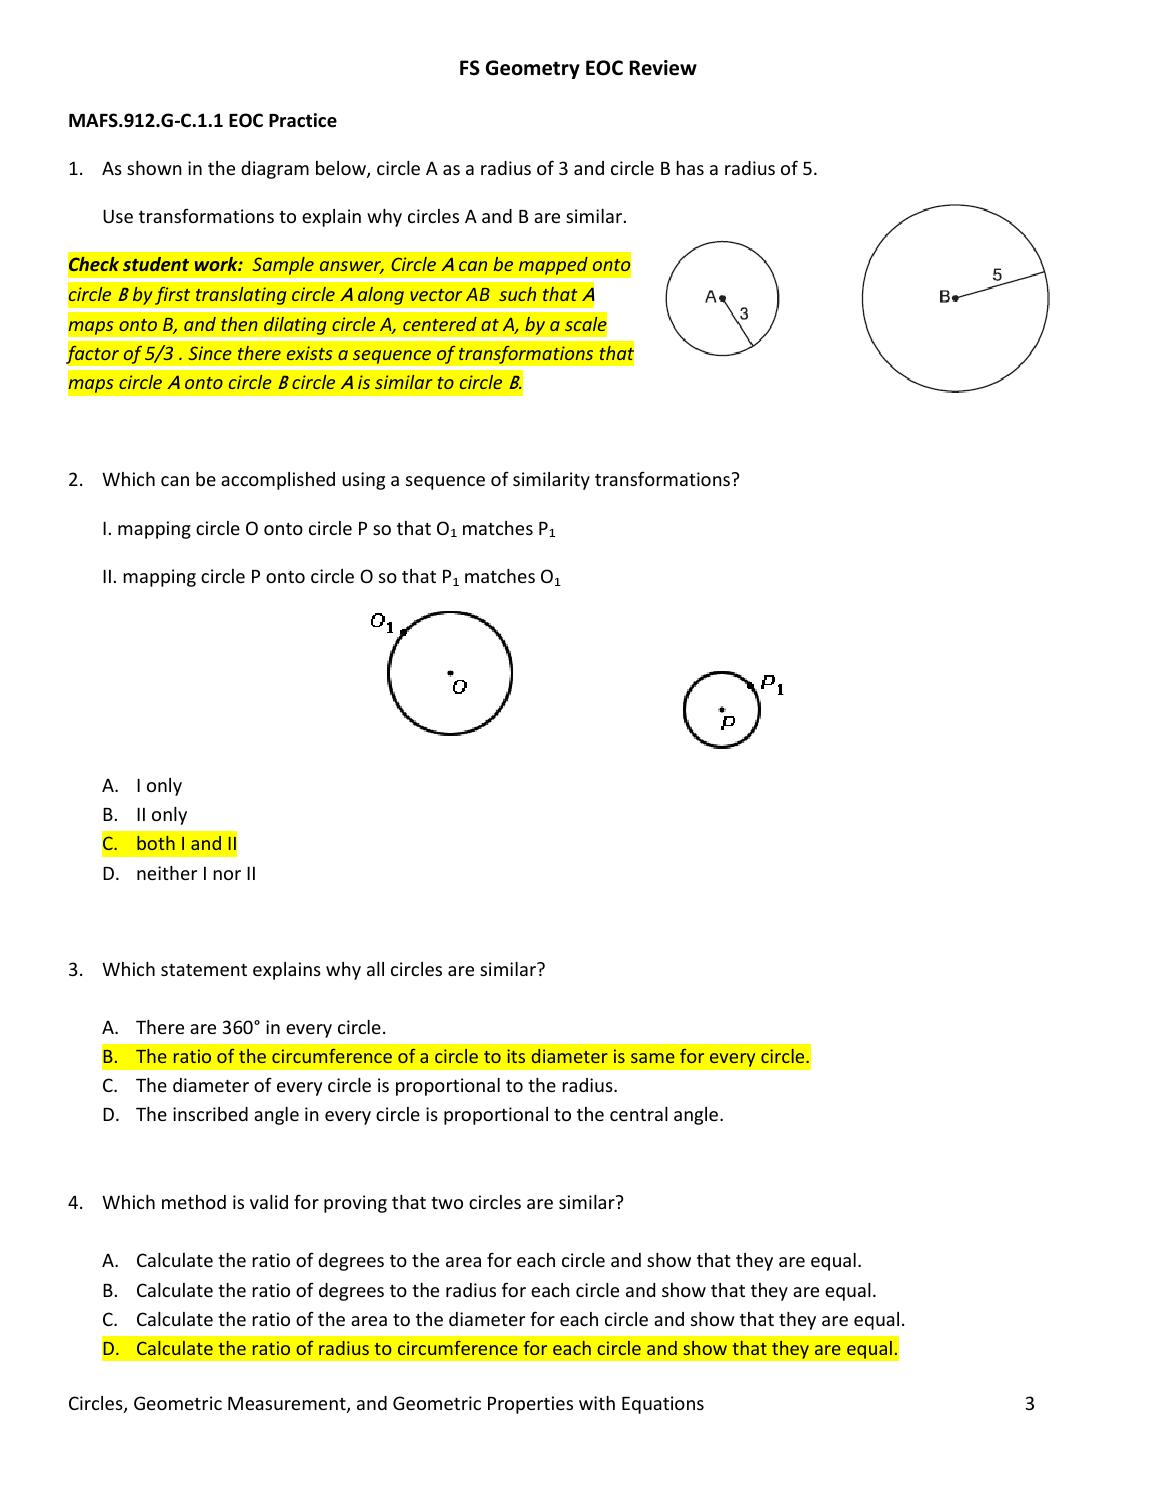 determining the ratio of circumference to diameter of a circle The circumference of a circle is  which represents the ratio of the circumference  if you could perfectly measure every circle's diameter and circumference,.